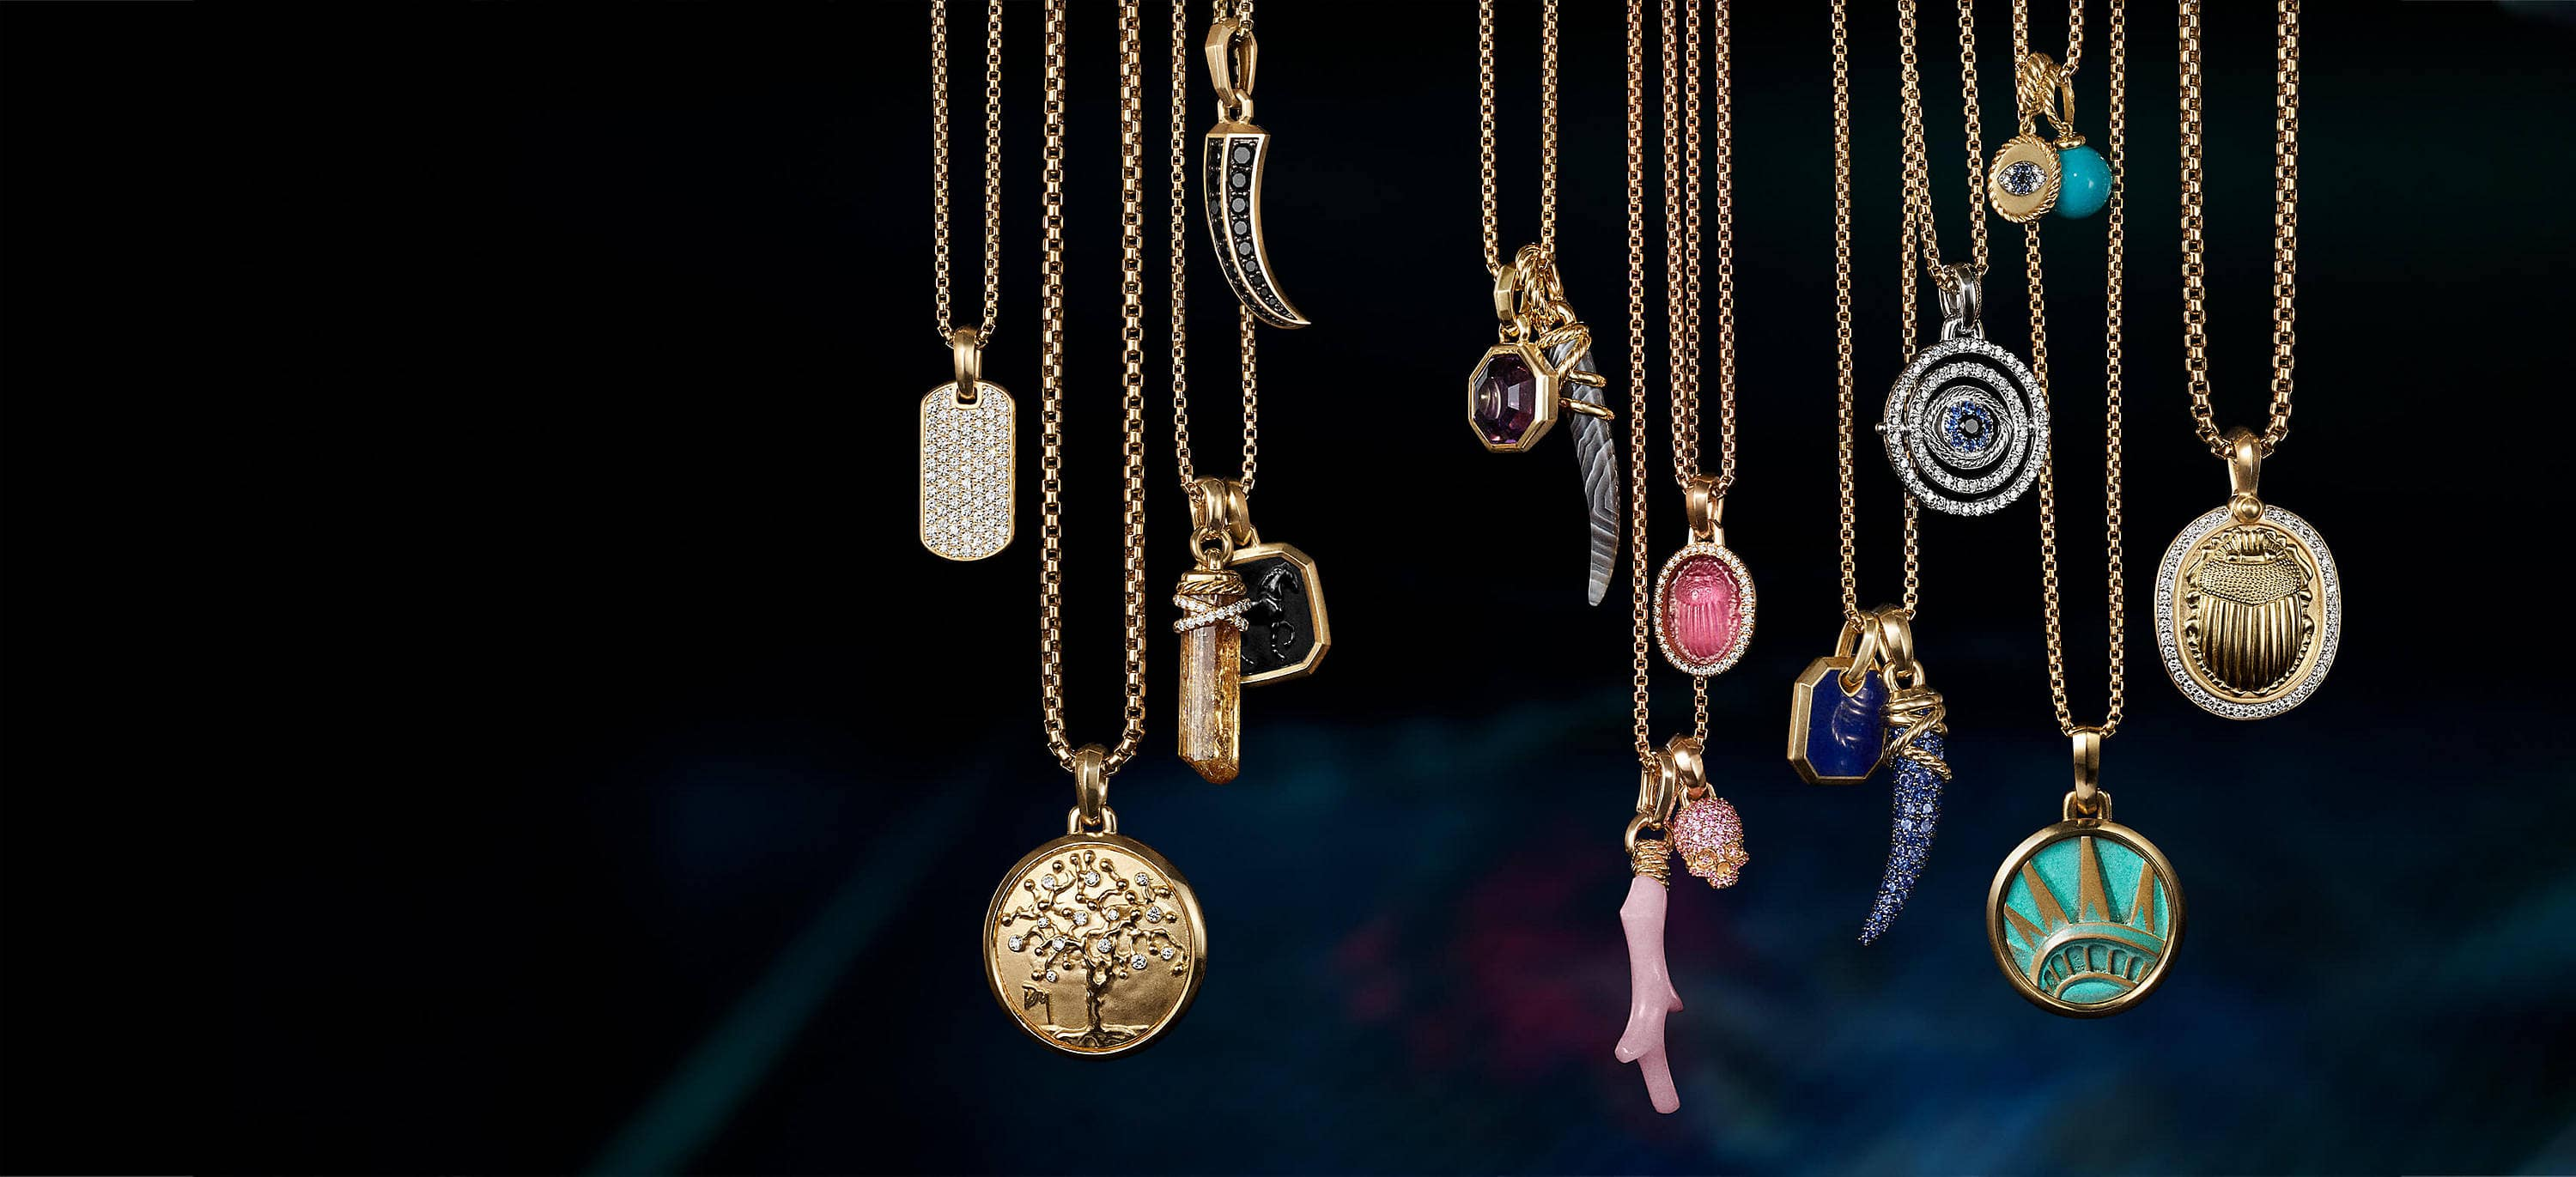 A color photograph shows 15 David Yurman amulet pendants hanging from a horizontal row of chain necklaces in front of an illuminated colorful backdrop. The women's jewelry is crafted from 18K yellow gold with or without pavé diamonds and an array of colored gemstones. The pendants come in various shapes such as a dog tag, branch of coral, horn, dagger, or skull or depict a multitude of images such as a tree of life and a scarab.